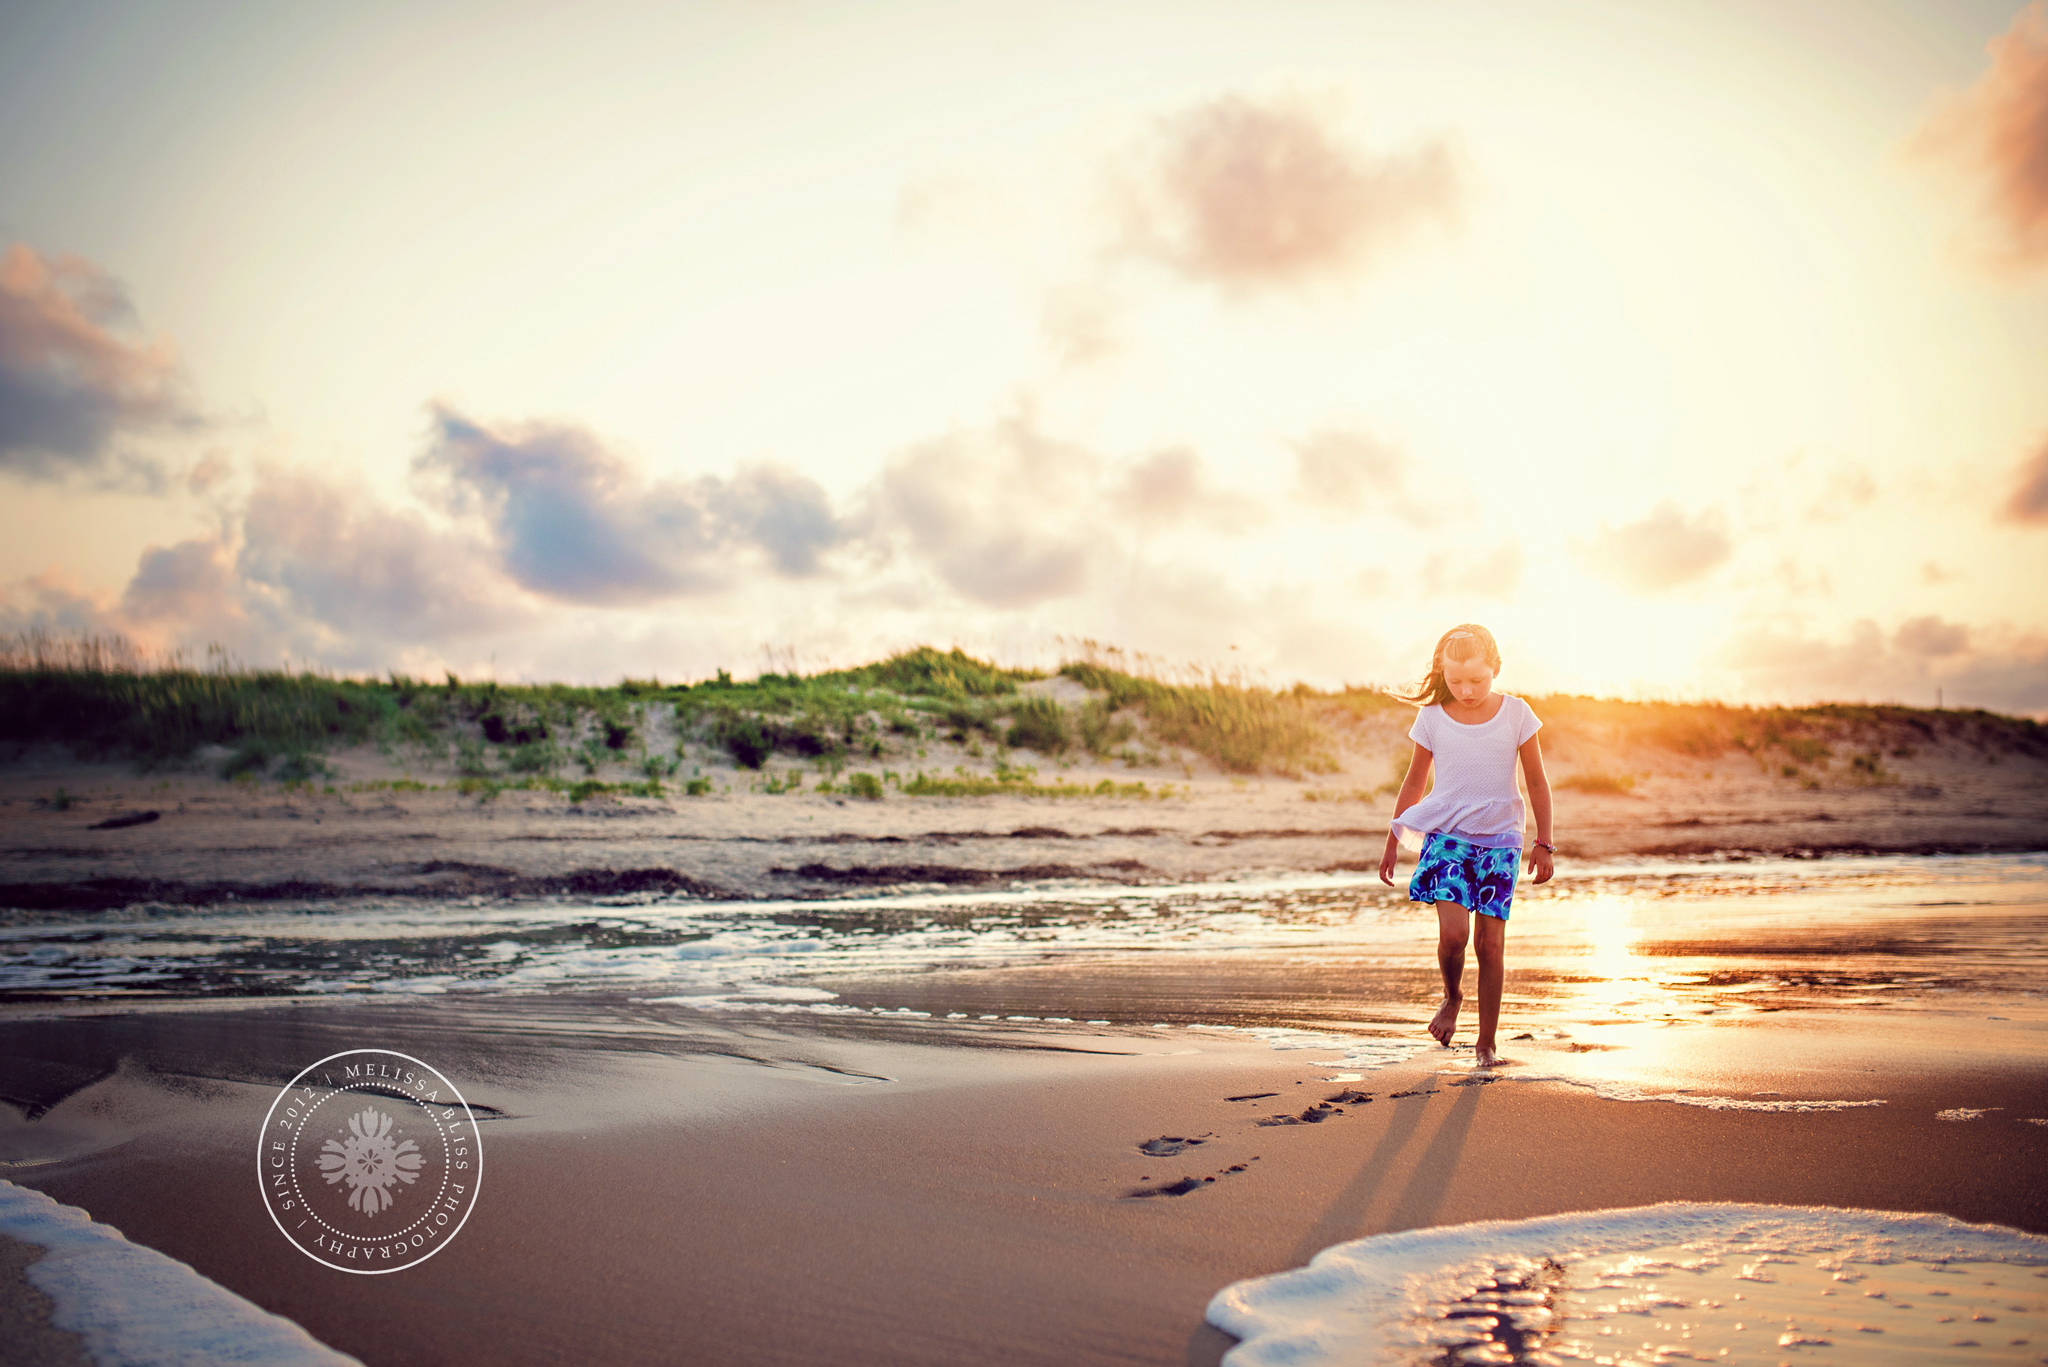 virginia-beach-norfolk-professional-child-and-family-photographers-melissa-bliss-photography-sandbridge-va-beach